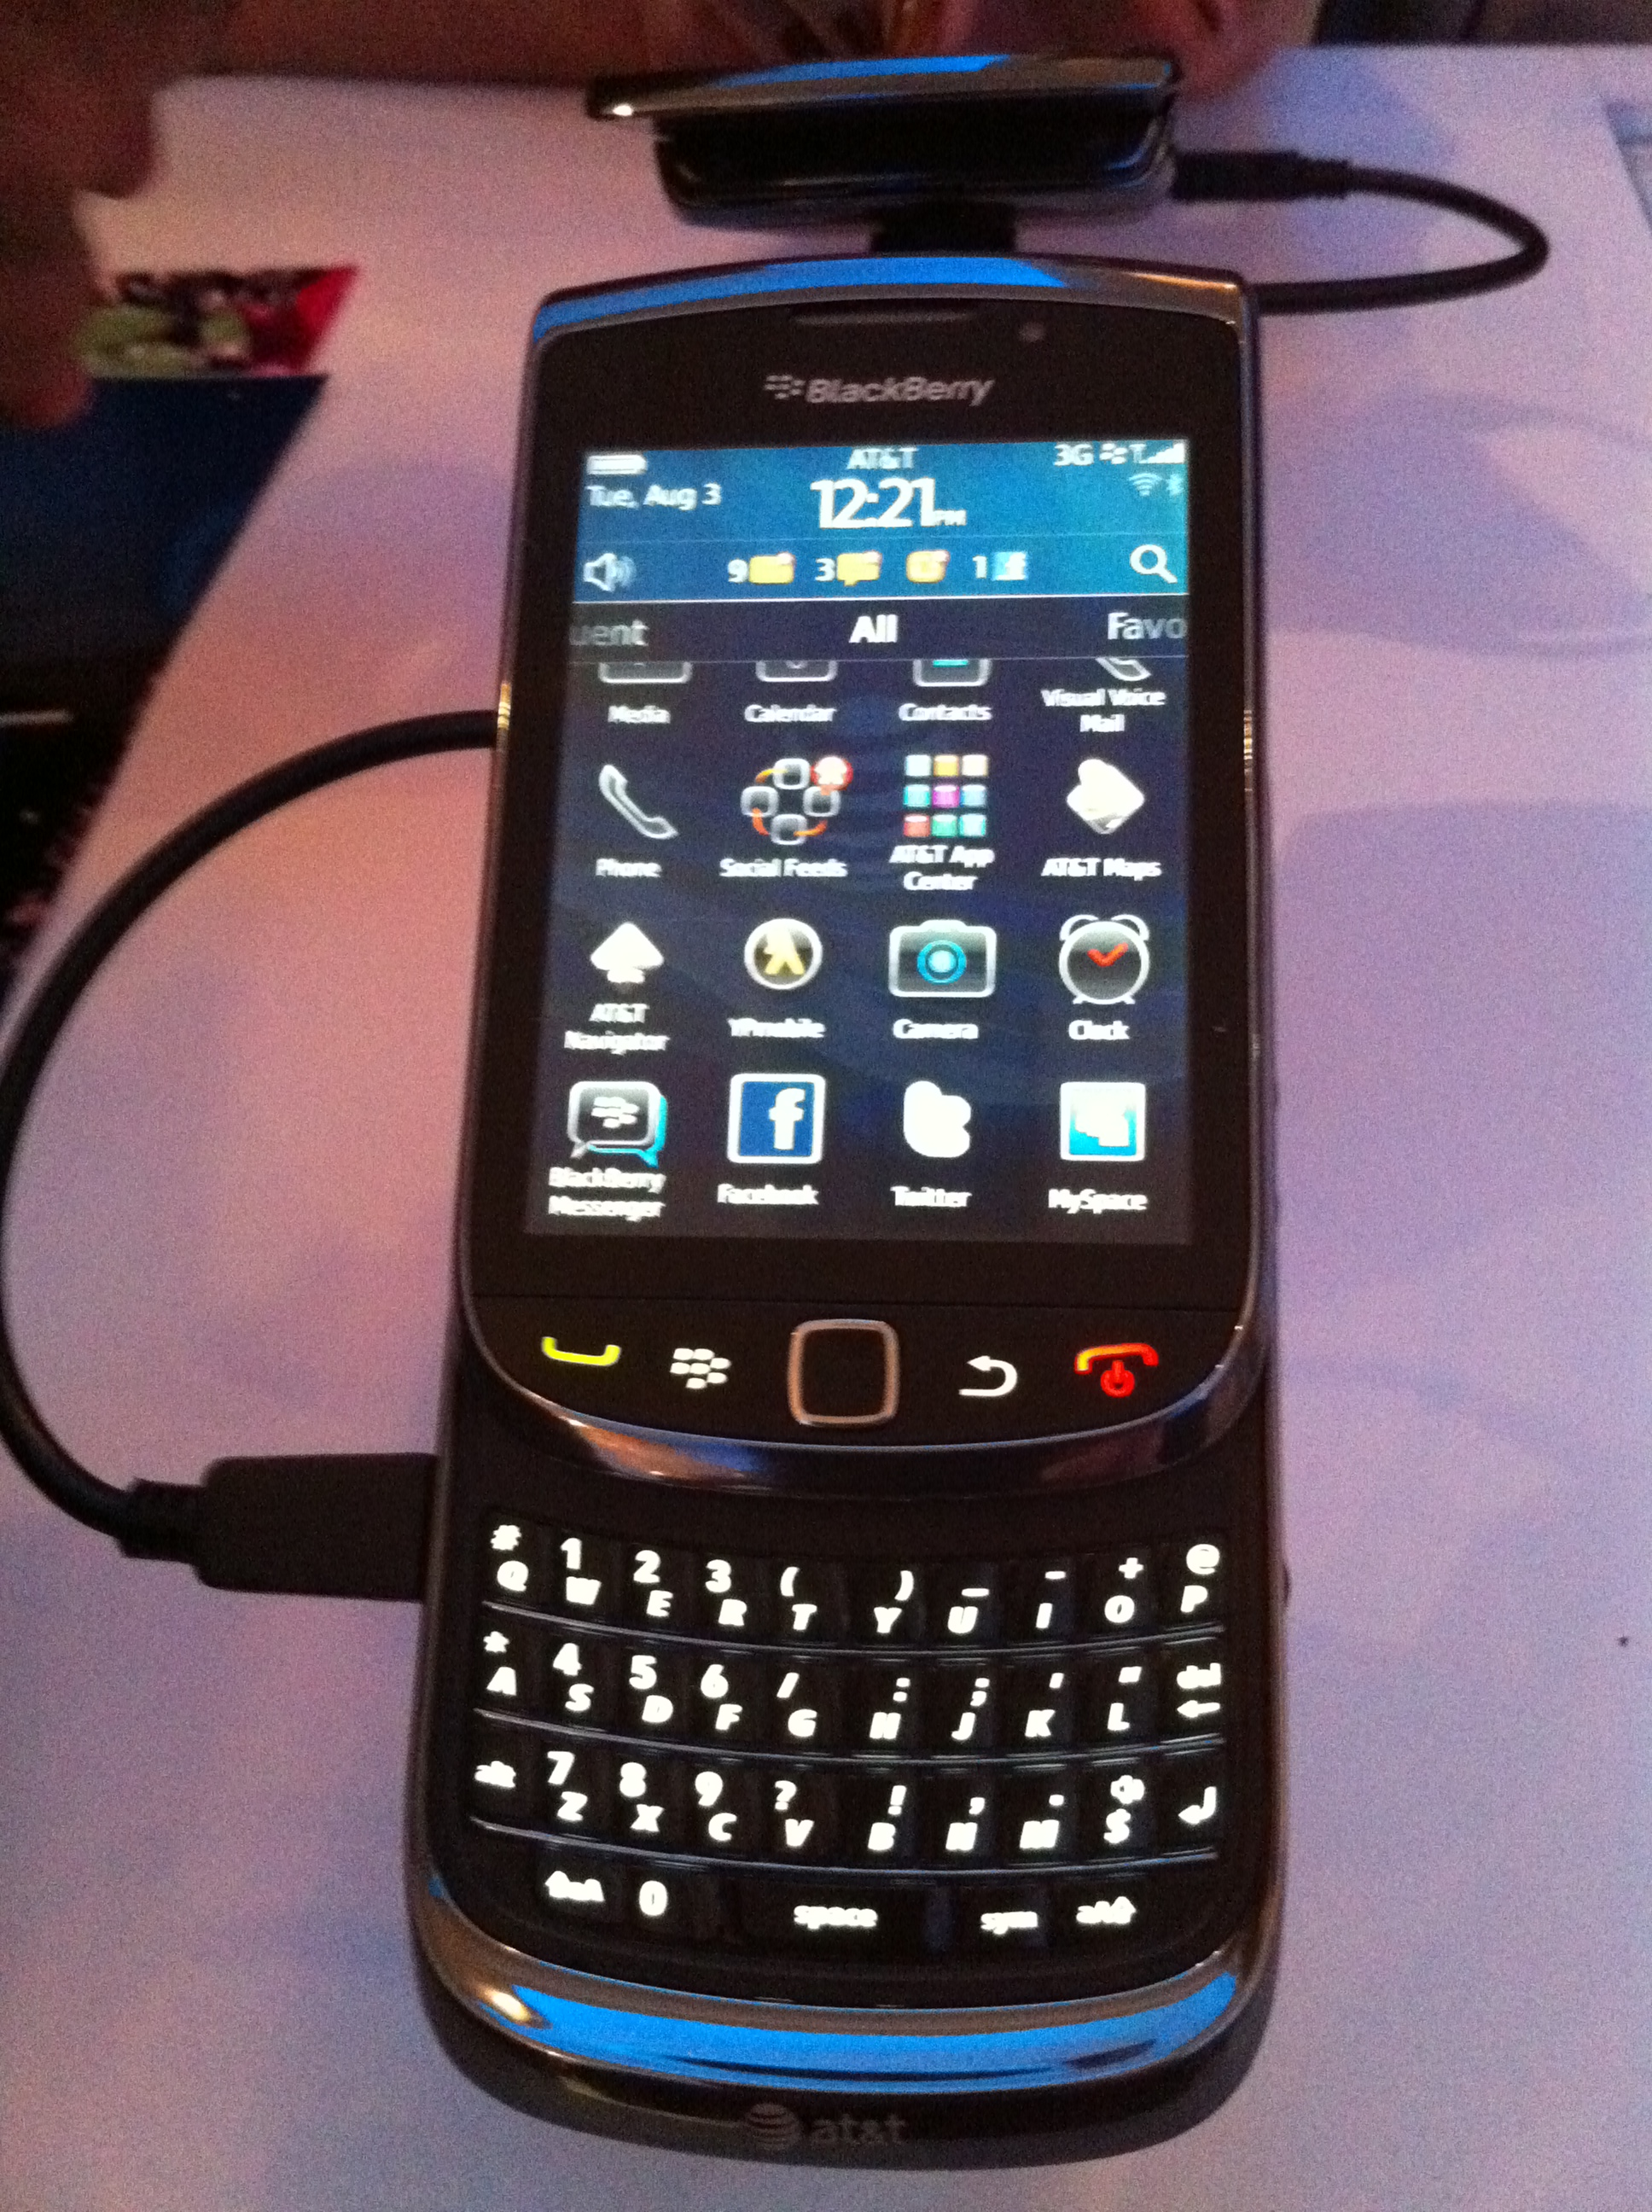 BlackBerry Torch announced for AT&T - Andrea Smith